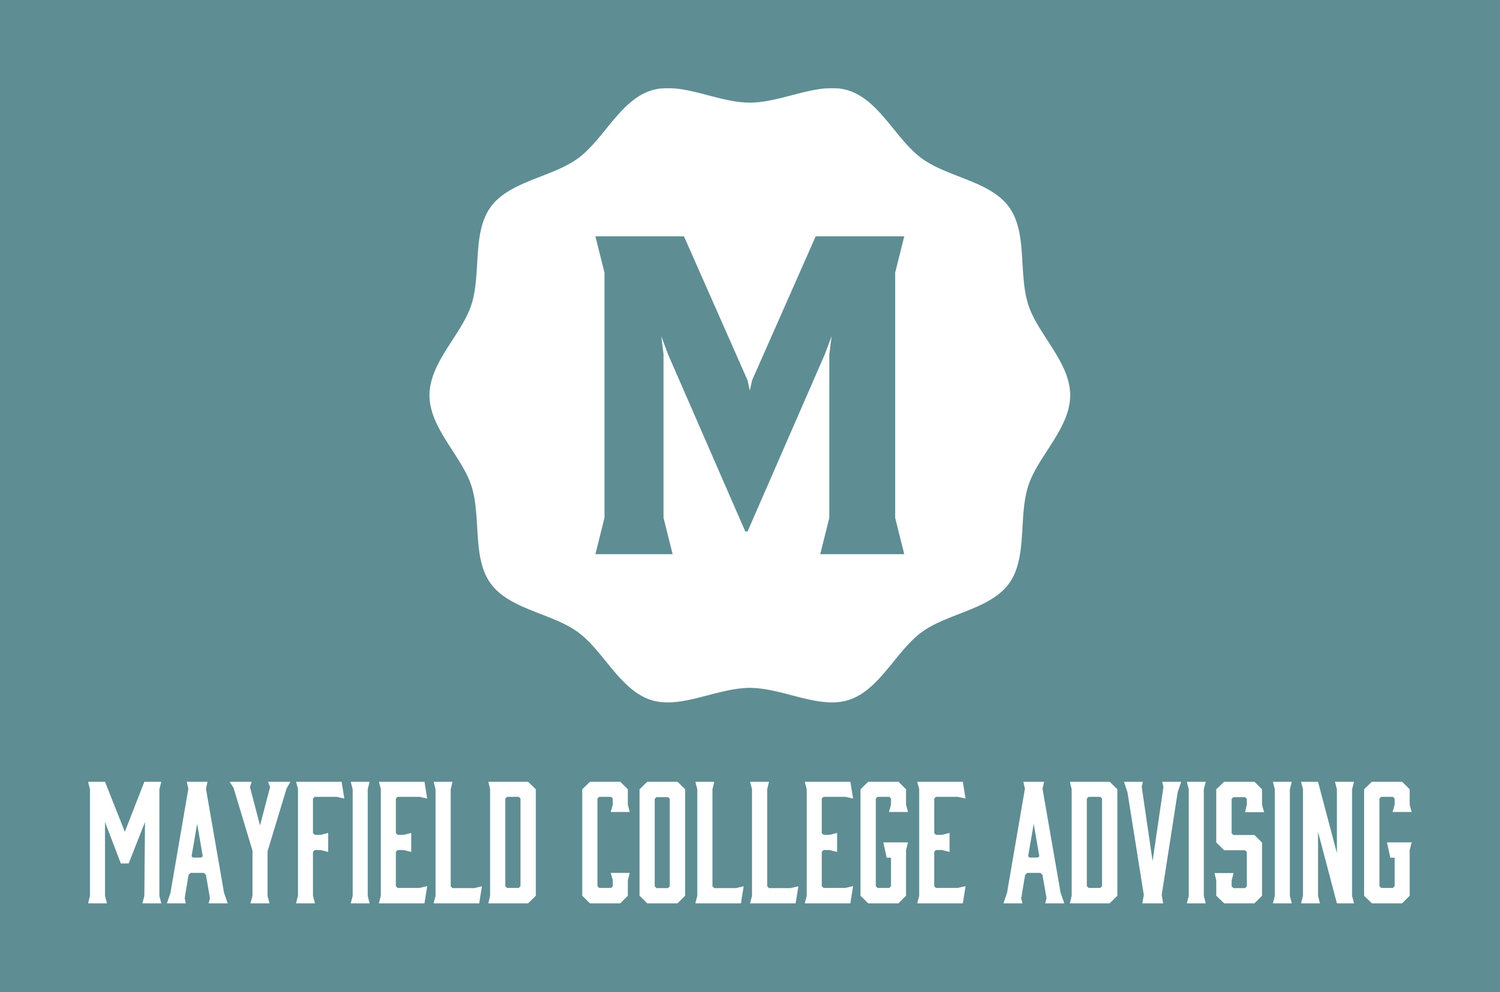 Mayfield College Advising